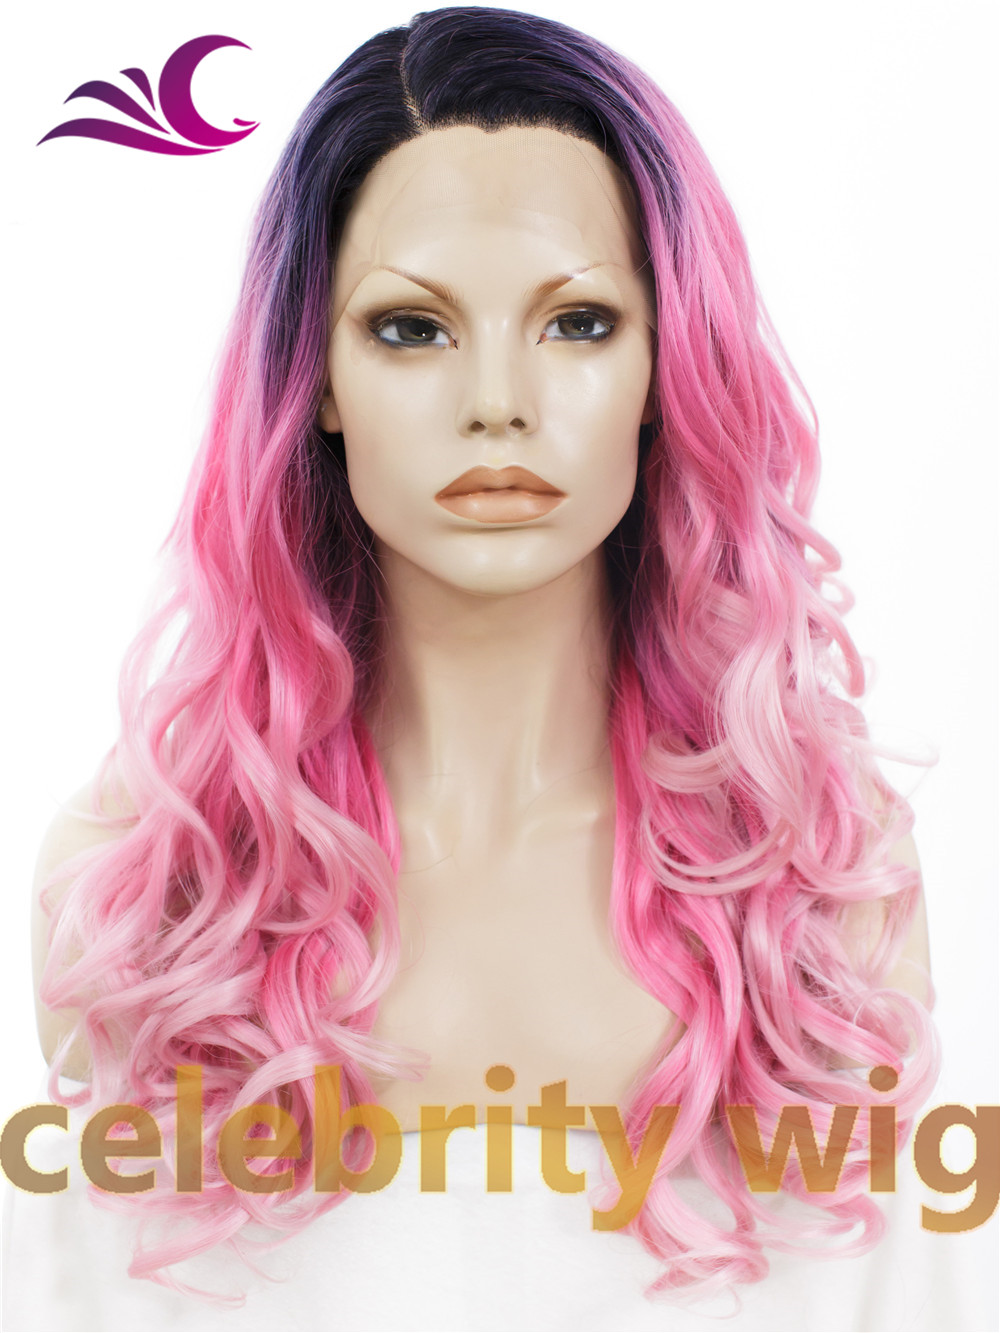 Cosplay&amp;drag queen&amp; celebrity wig dark root ombre pink wavy 24 long fashion hair synthetic lace front  side parting wig <br><br>Aliexpress